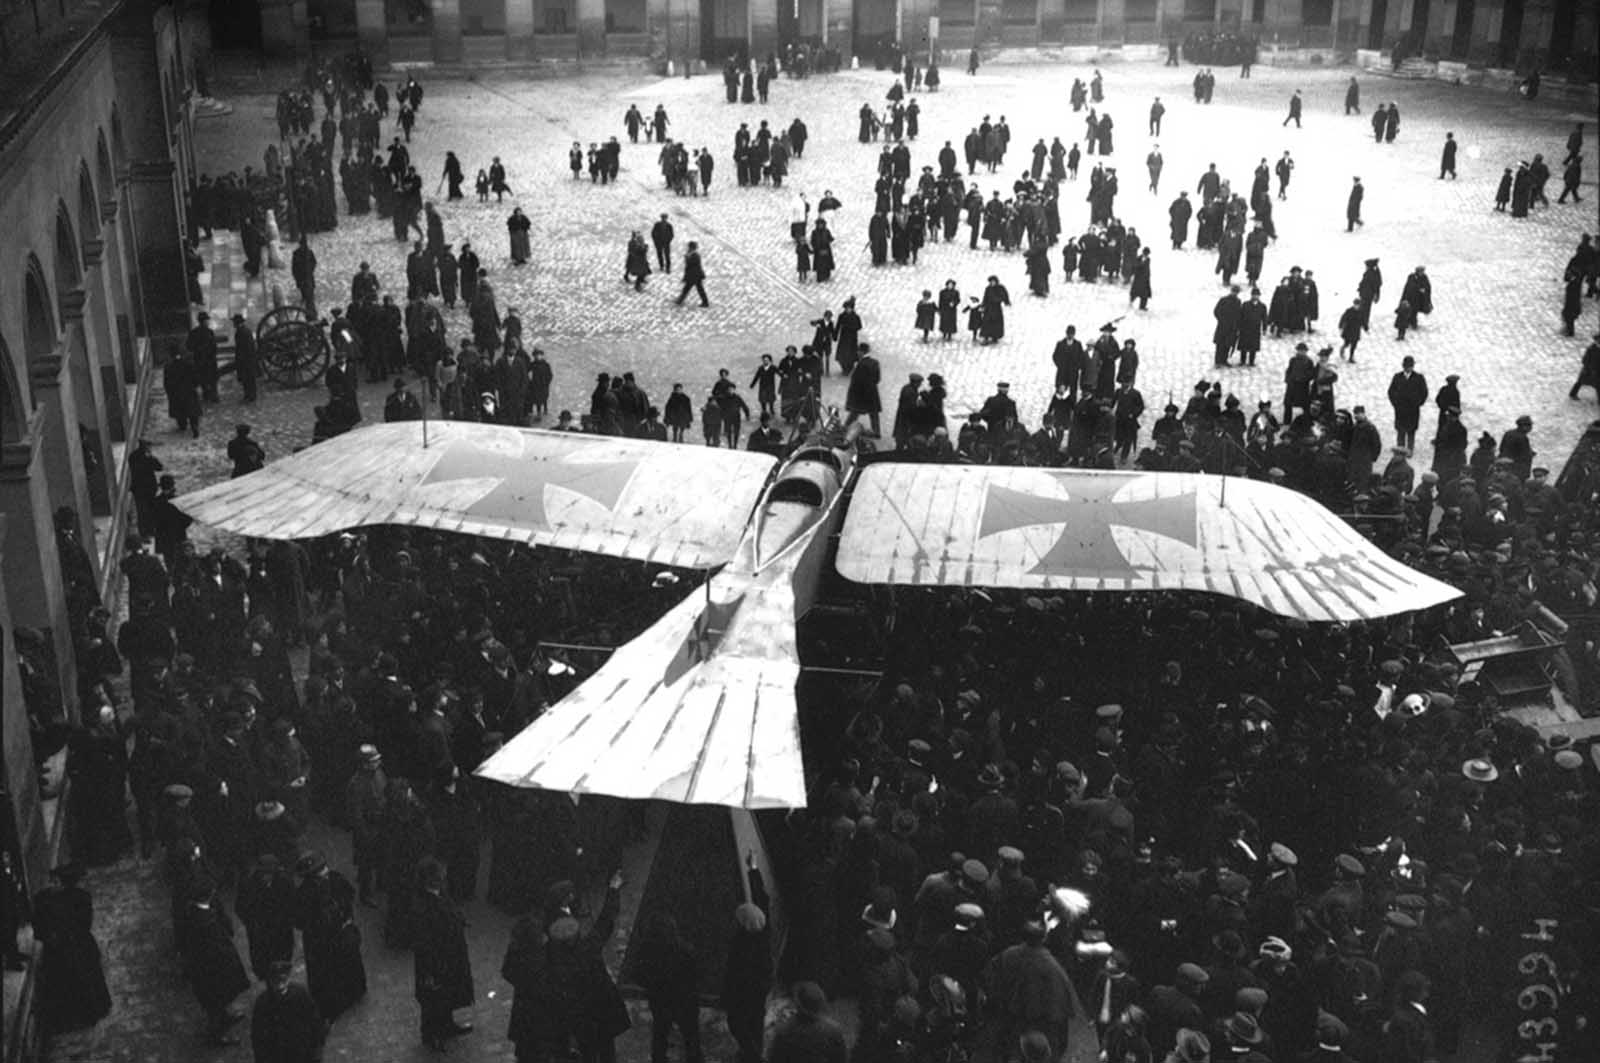 A captured German Taube monoplane, on display in the courtyard of Les Invalides in Paris, in 1915. The Taube was a pre-World War I aircraft, only briefly used on the front lines, replaced later by newer designs.